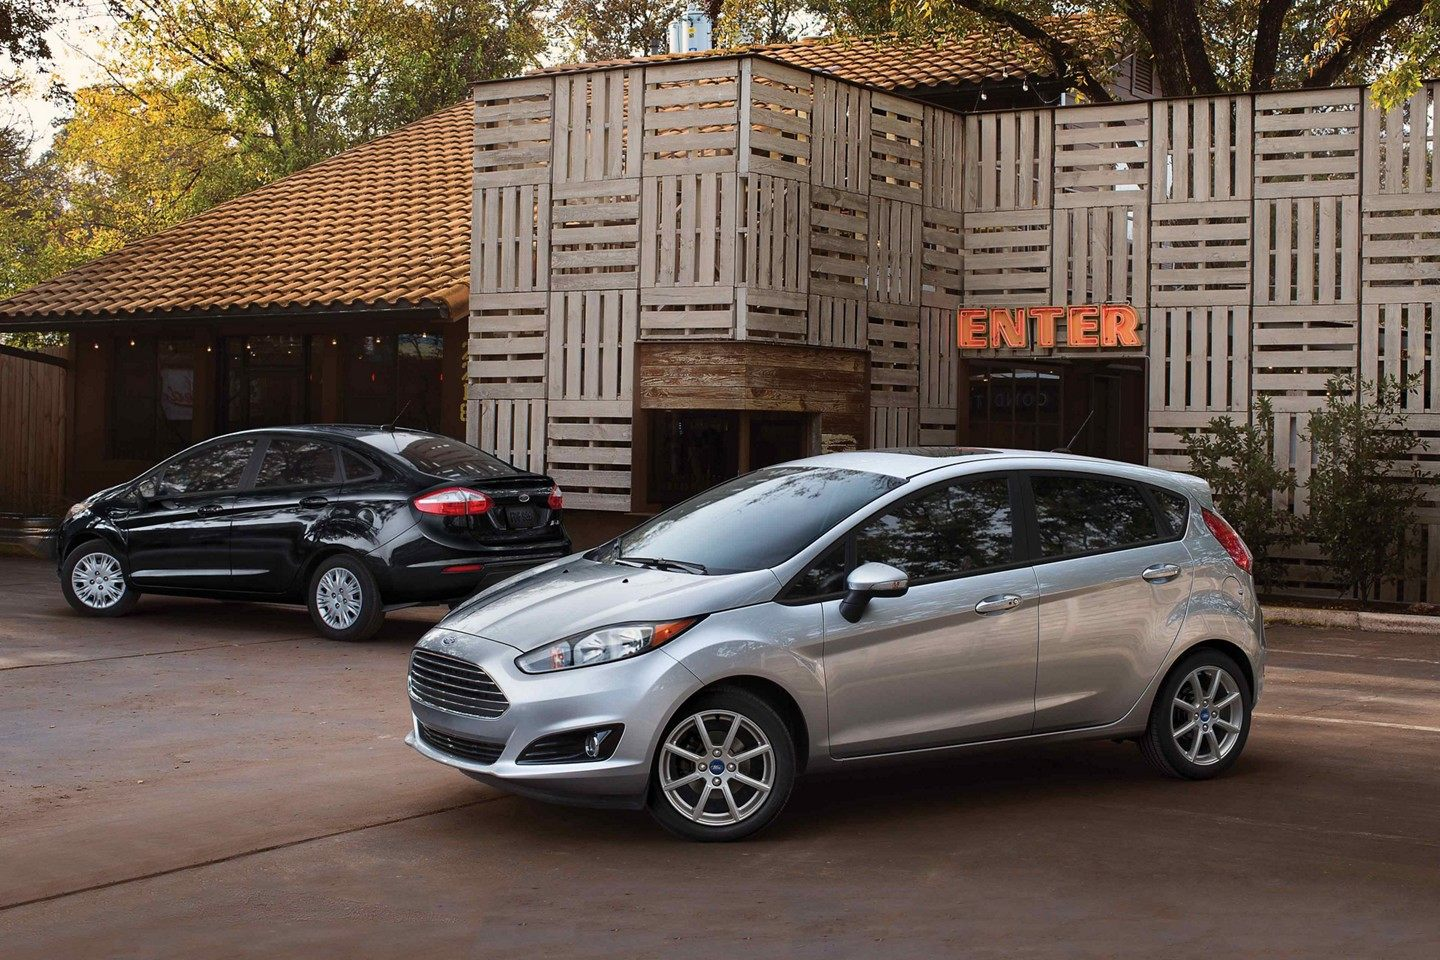 2019 Ford Fiesta Black and Gray Exterior